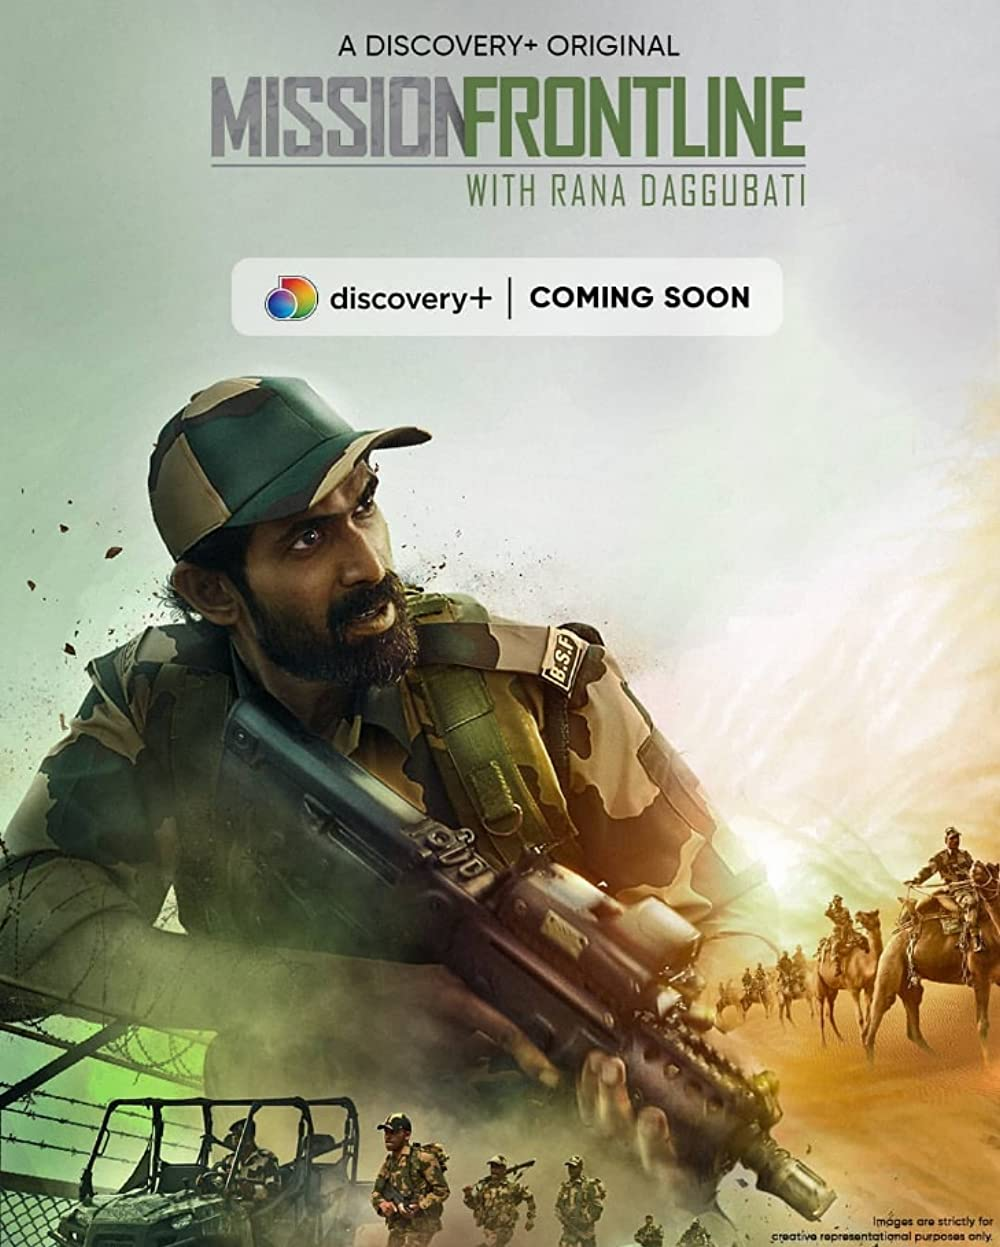 Mission Frontline with Rana Daggubati 2021 S01E01 Hindi DSCV Web Series 720p HDRip ESub 300MB Download